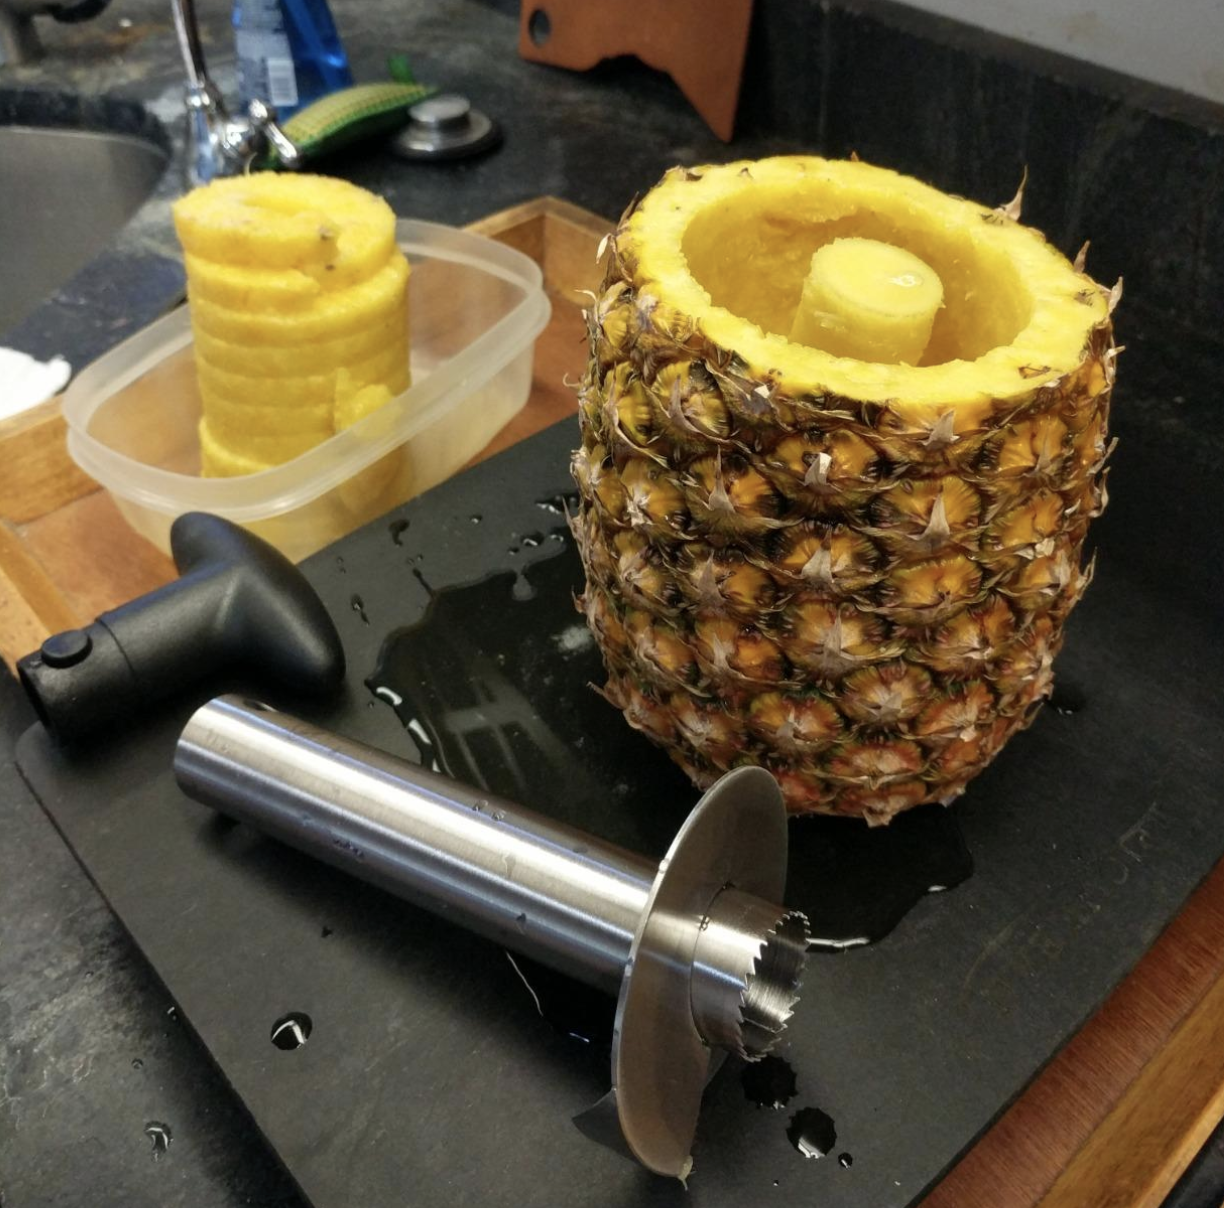 stainless steel corer next to empty pineapple with cut pineapple slices next to it